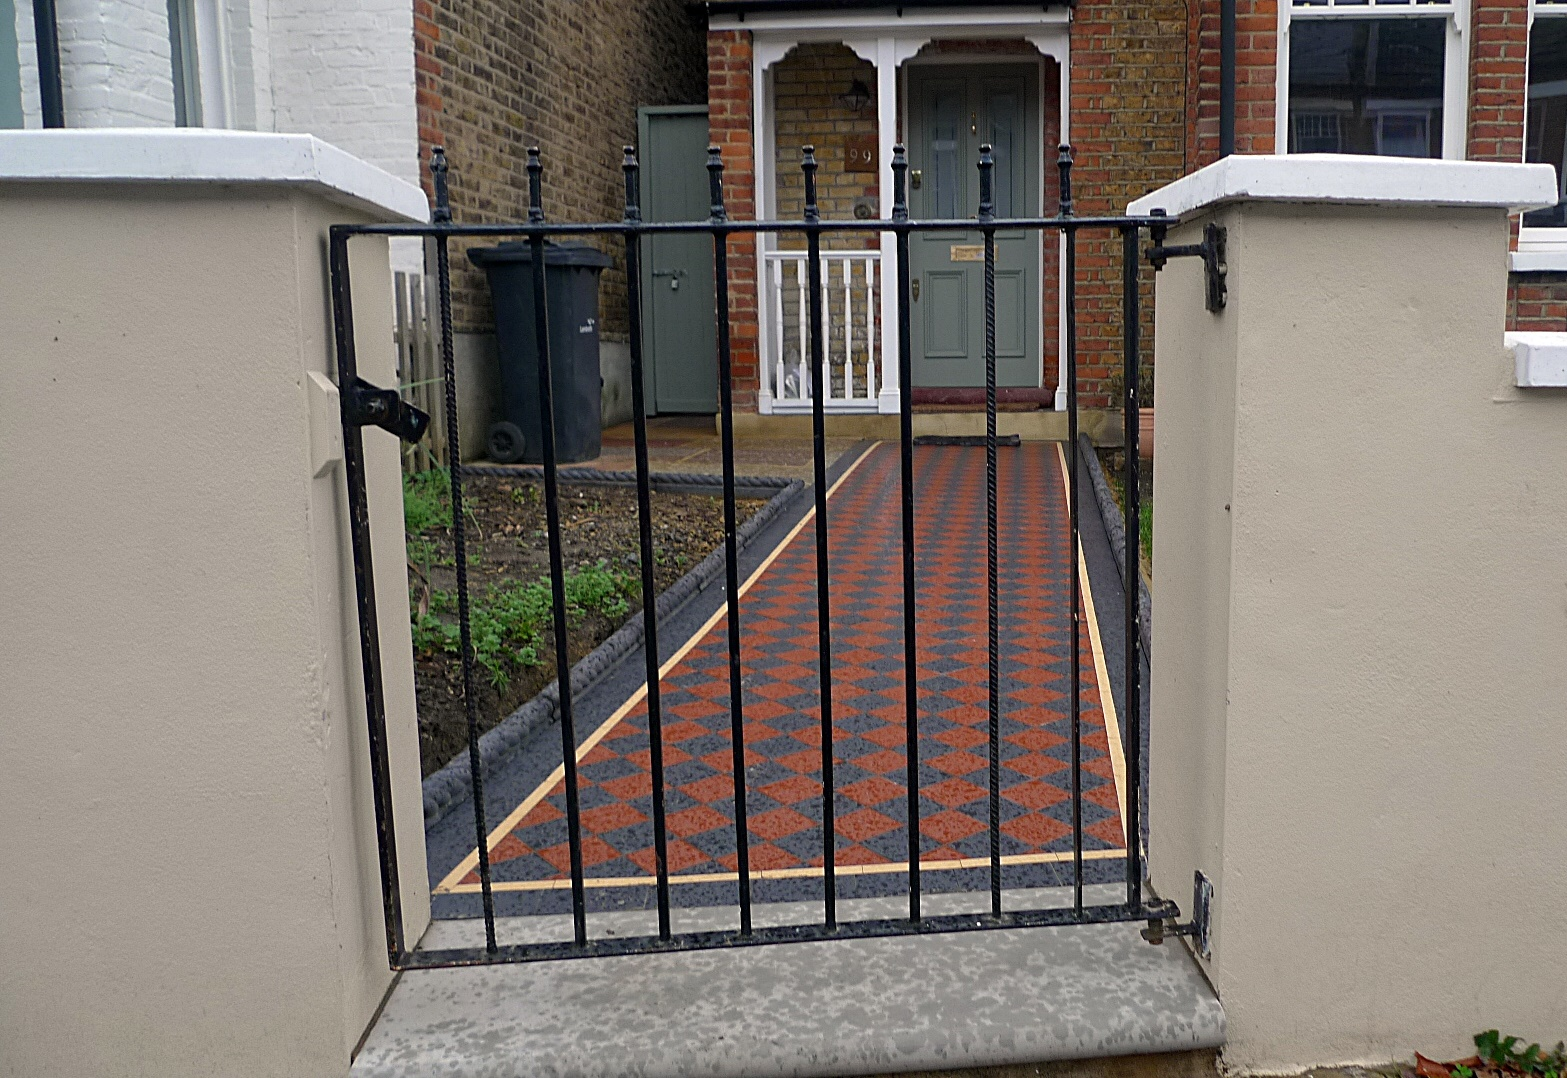 Ornamental stone multi colour mosaic Victorian mosaic metal gate metal rail York stone entrance stone charcoal rope edge tiles render garden wall Streatham Clapham West Norwood Balham London